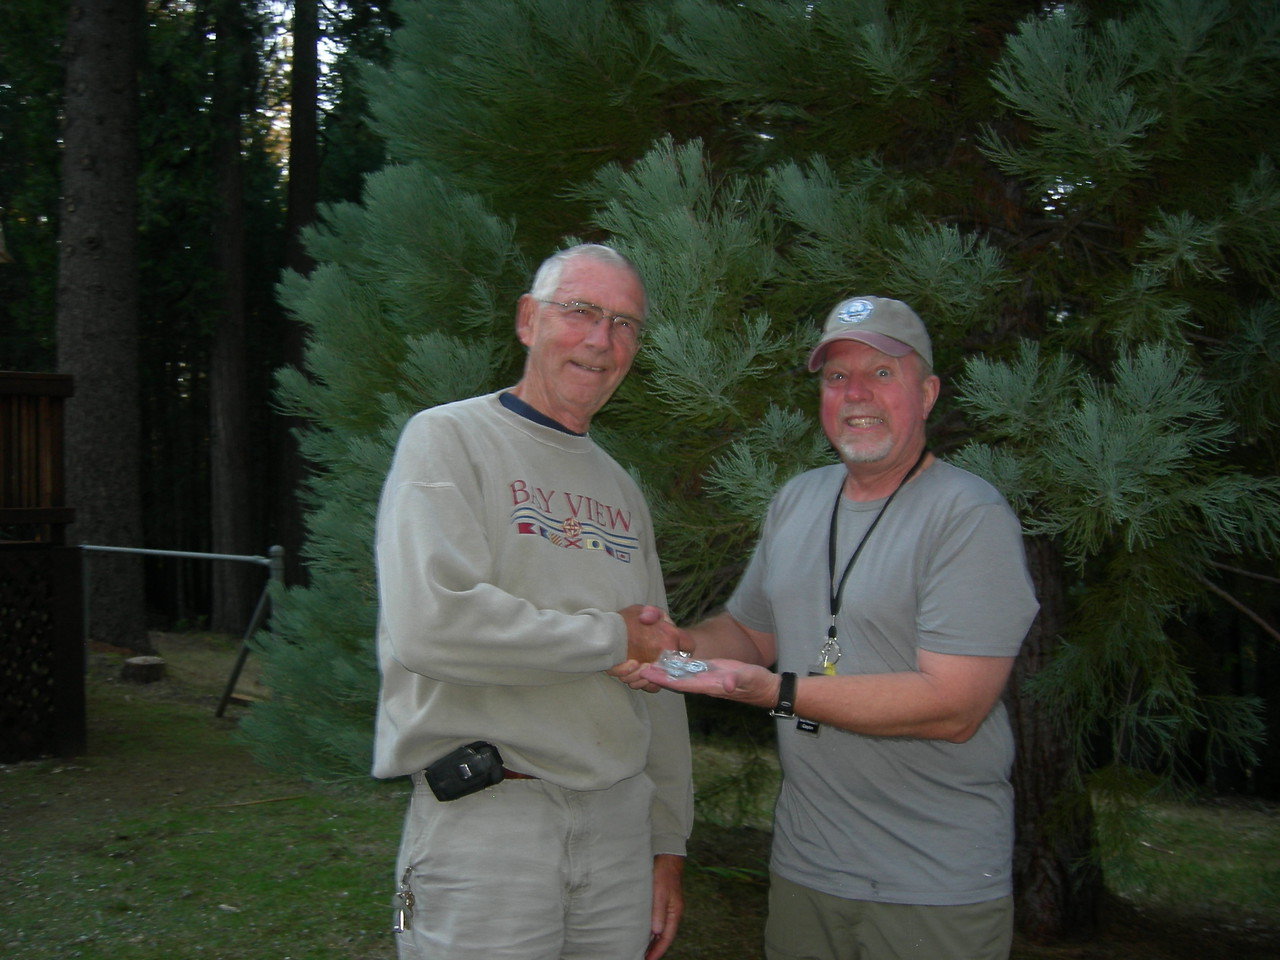 Bob Pelikan receives his 15-year, 20-year and 25-year membership pins from VP Peter Oxenbol.